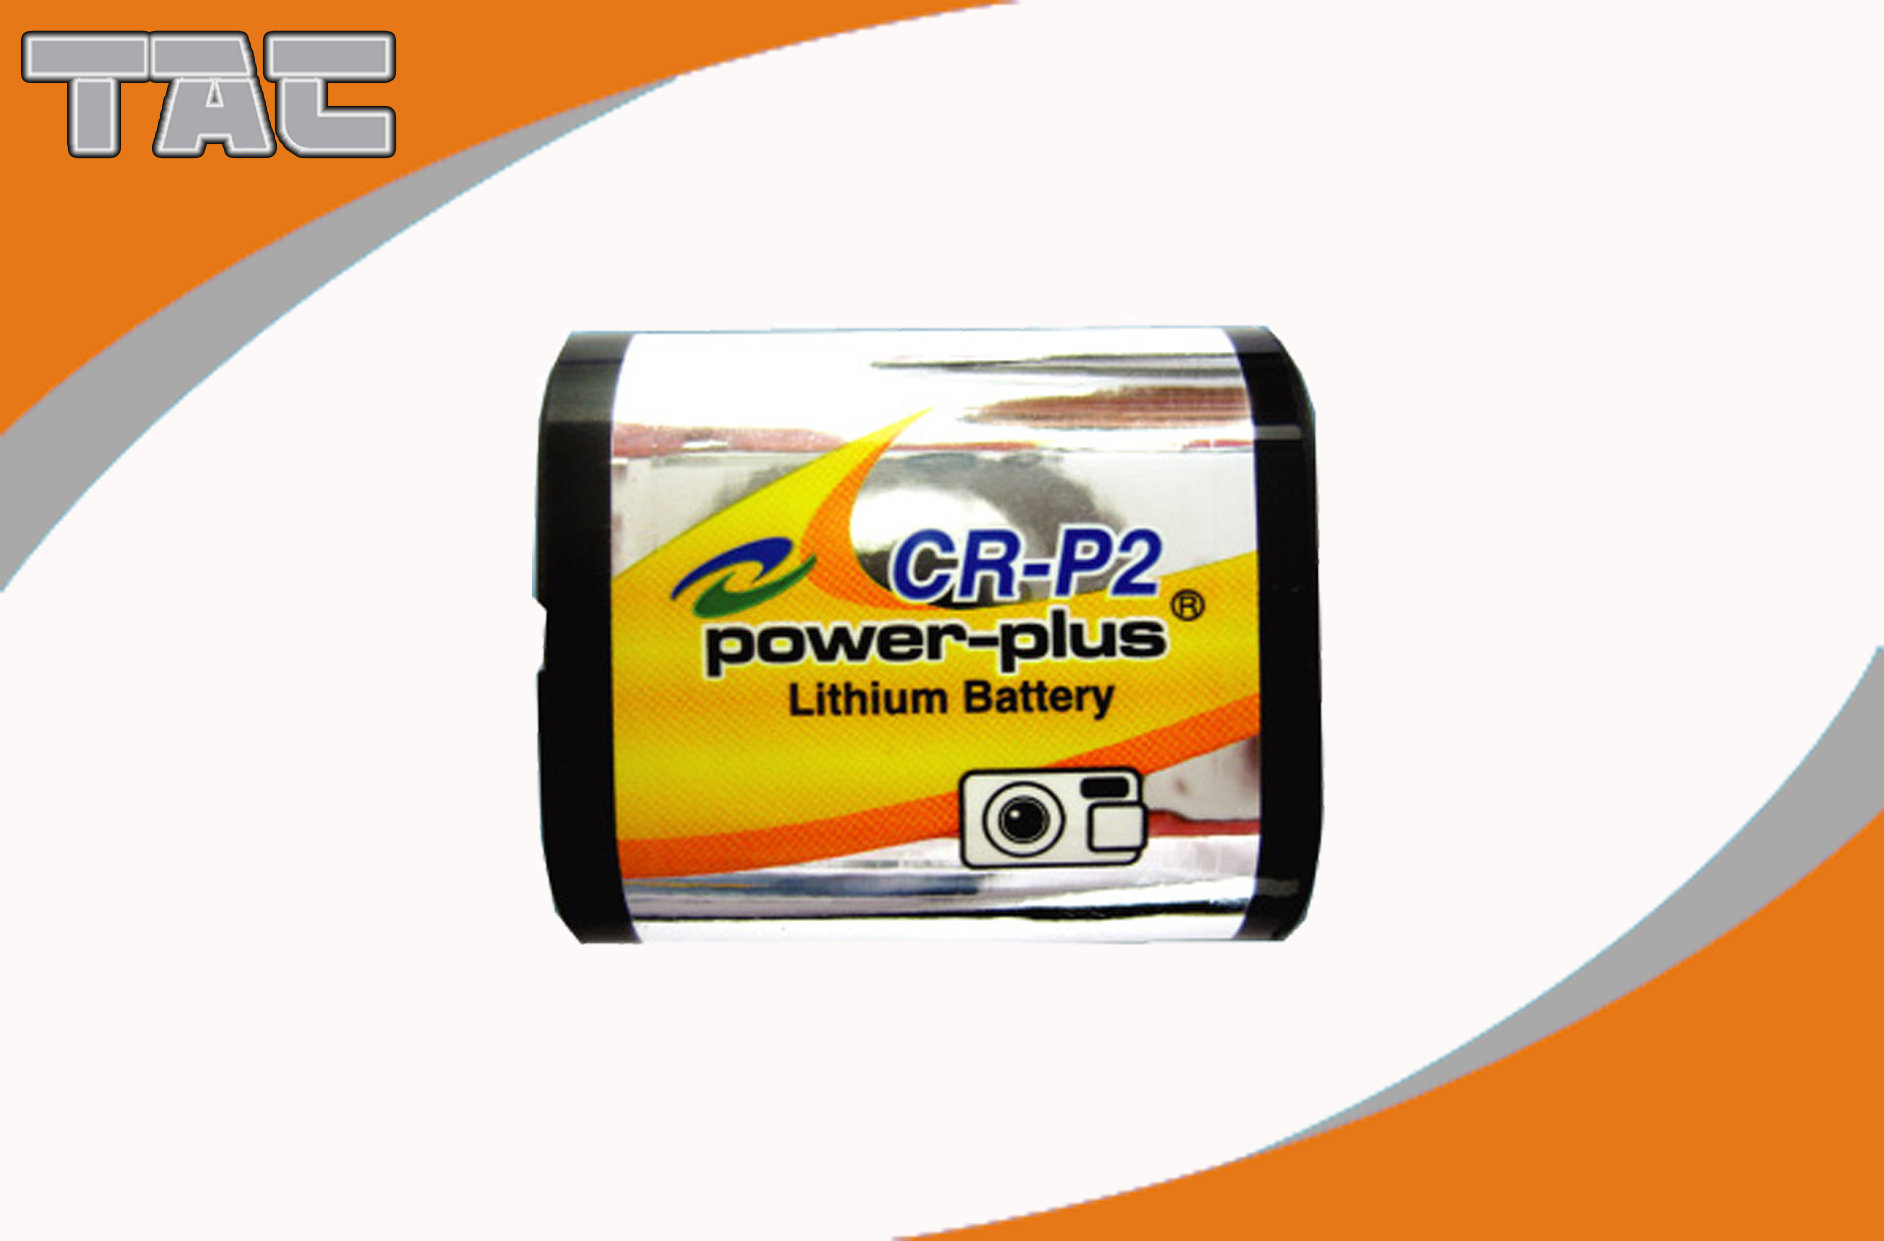 Vehicle Tracking Lithium Battery CR-P2 3.0V 1300mAh High Energy